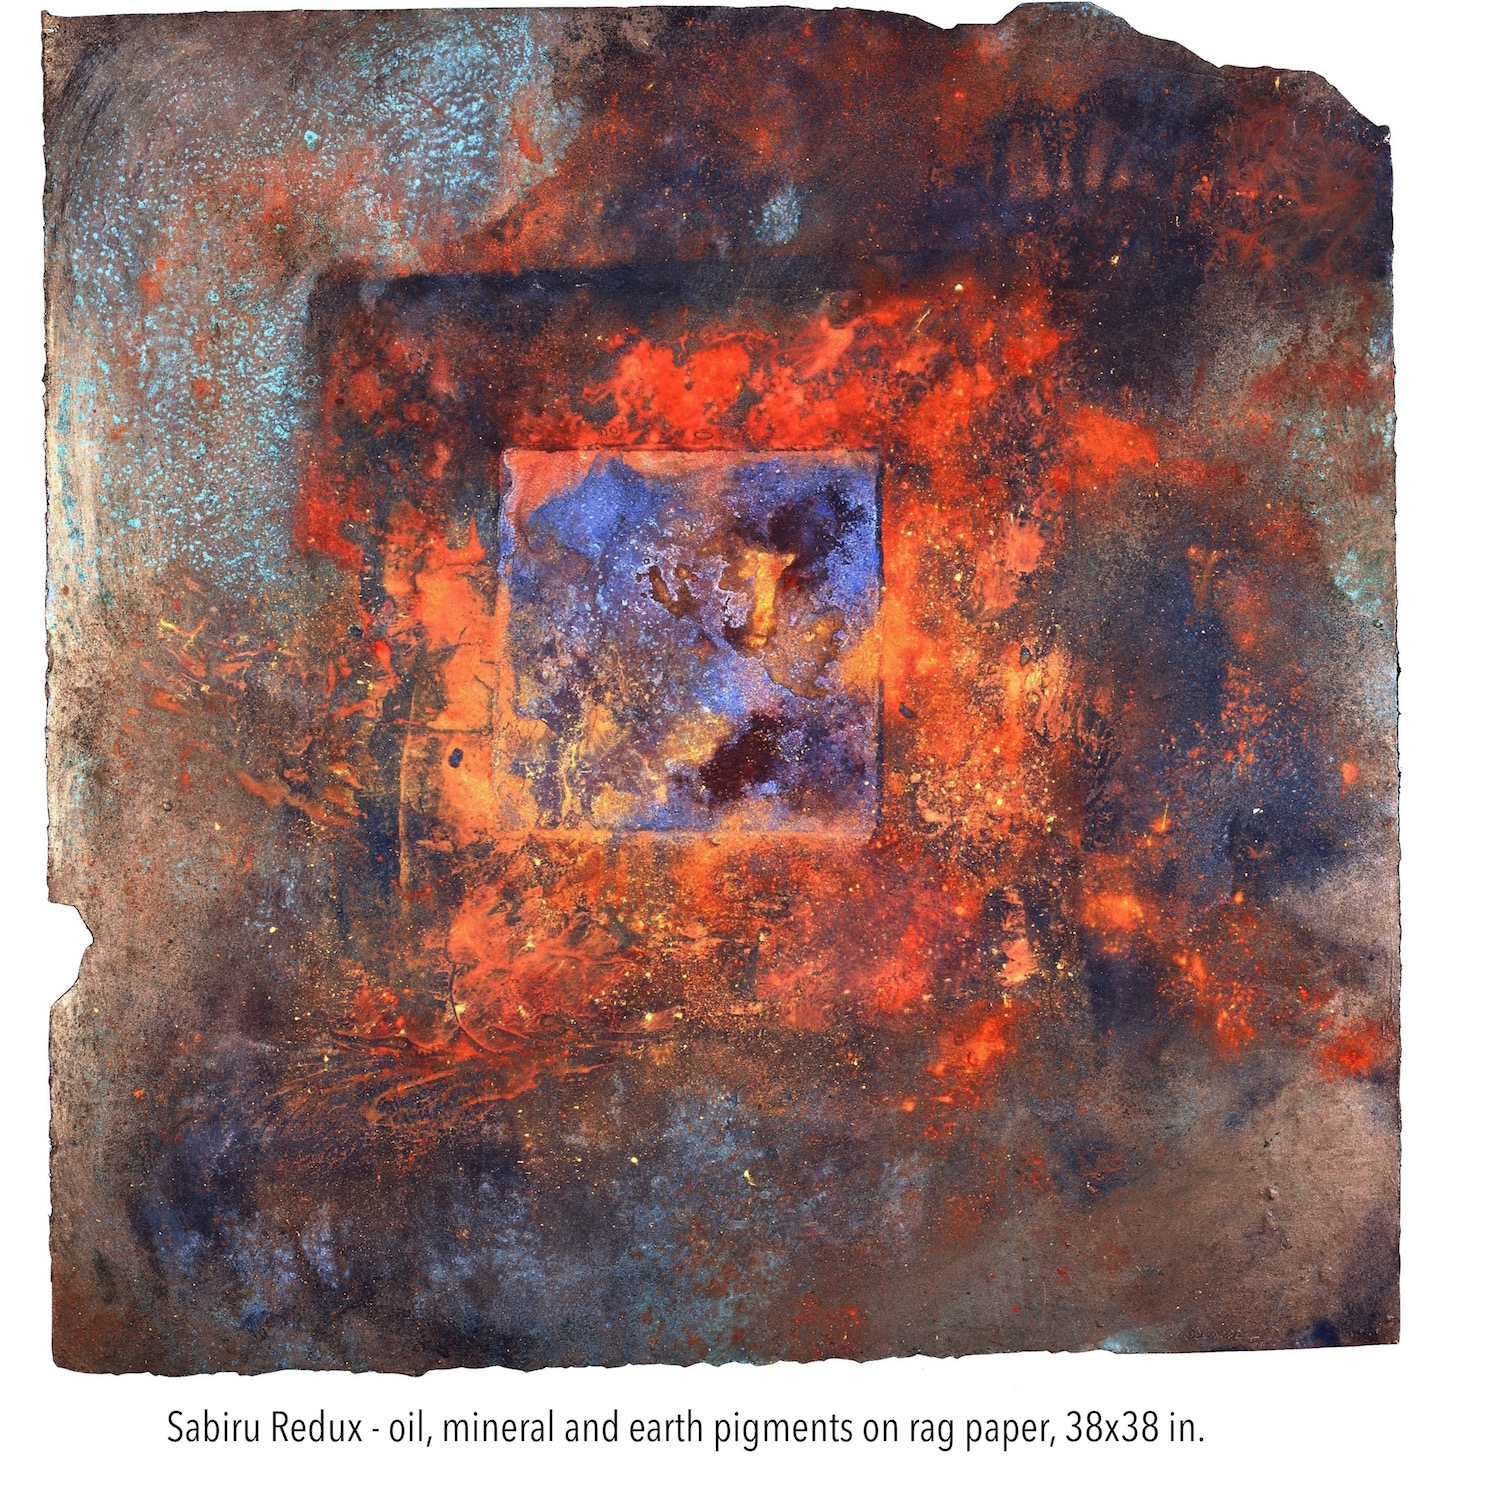 Sabiru Redux, oil, mineral and earth pigments on rag paper, 38x38 in. (1).jpg